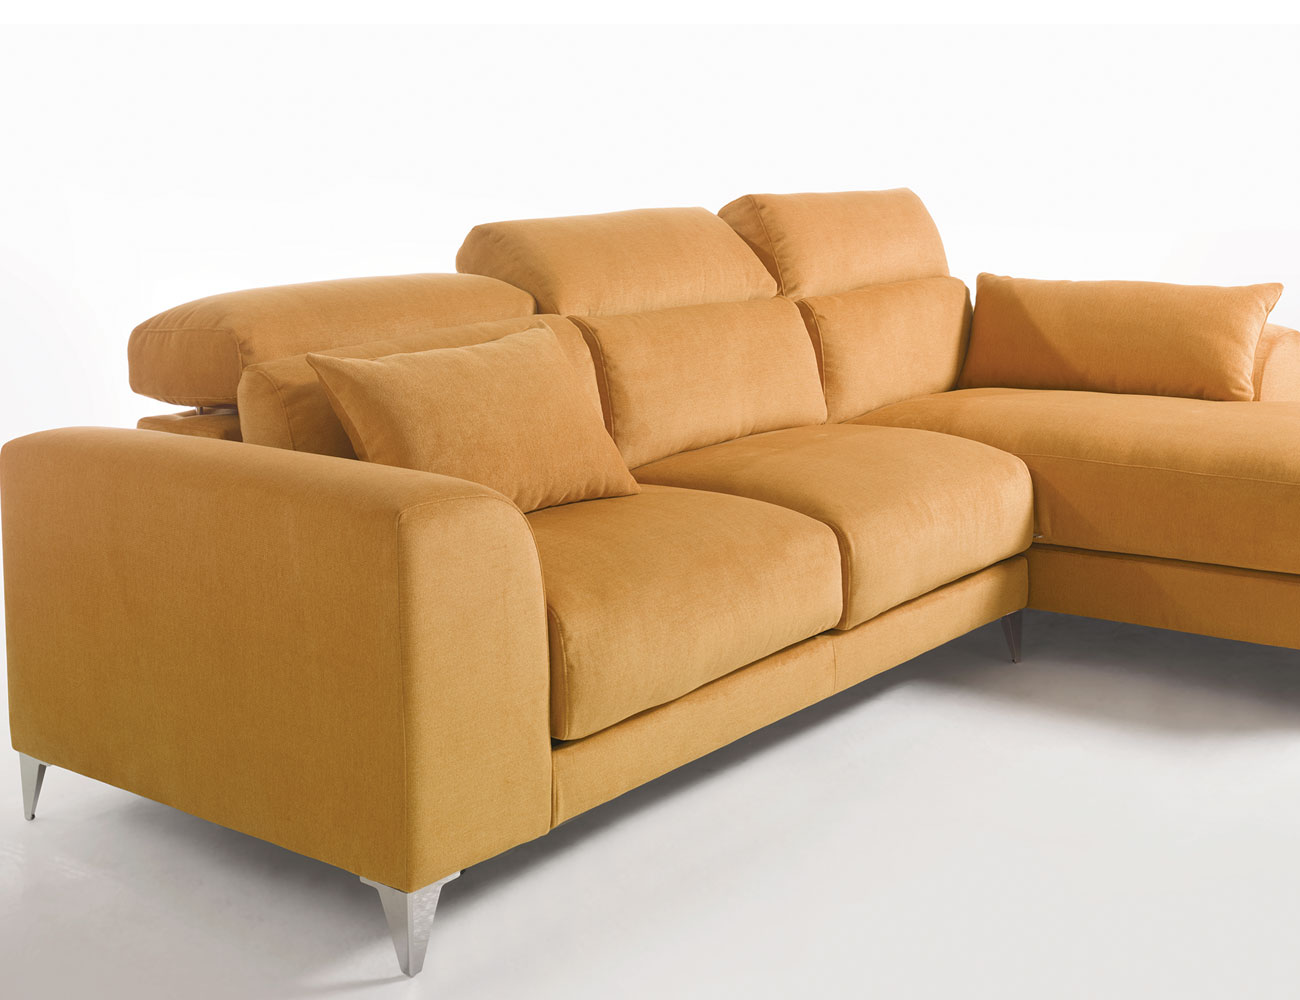 Sofa chaiselongue gran lujo decorativo patas altas amarillo 240